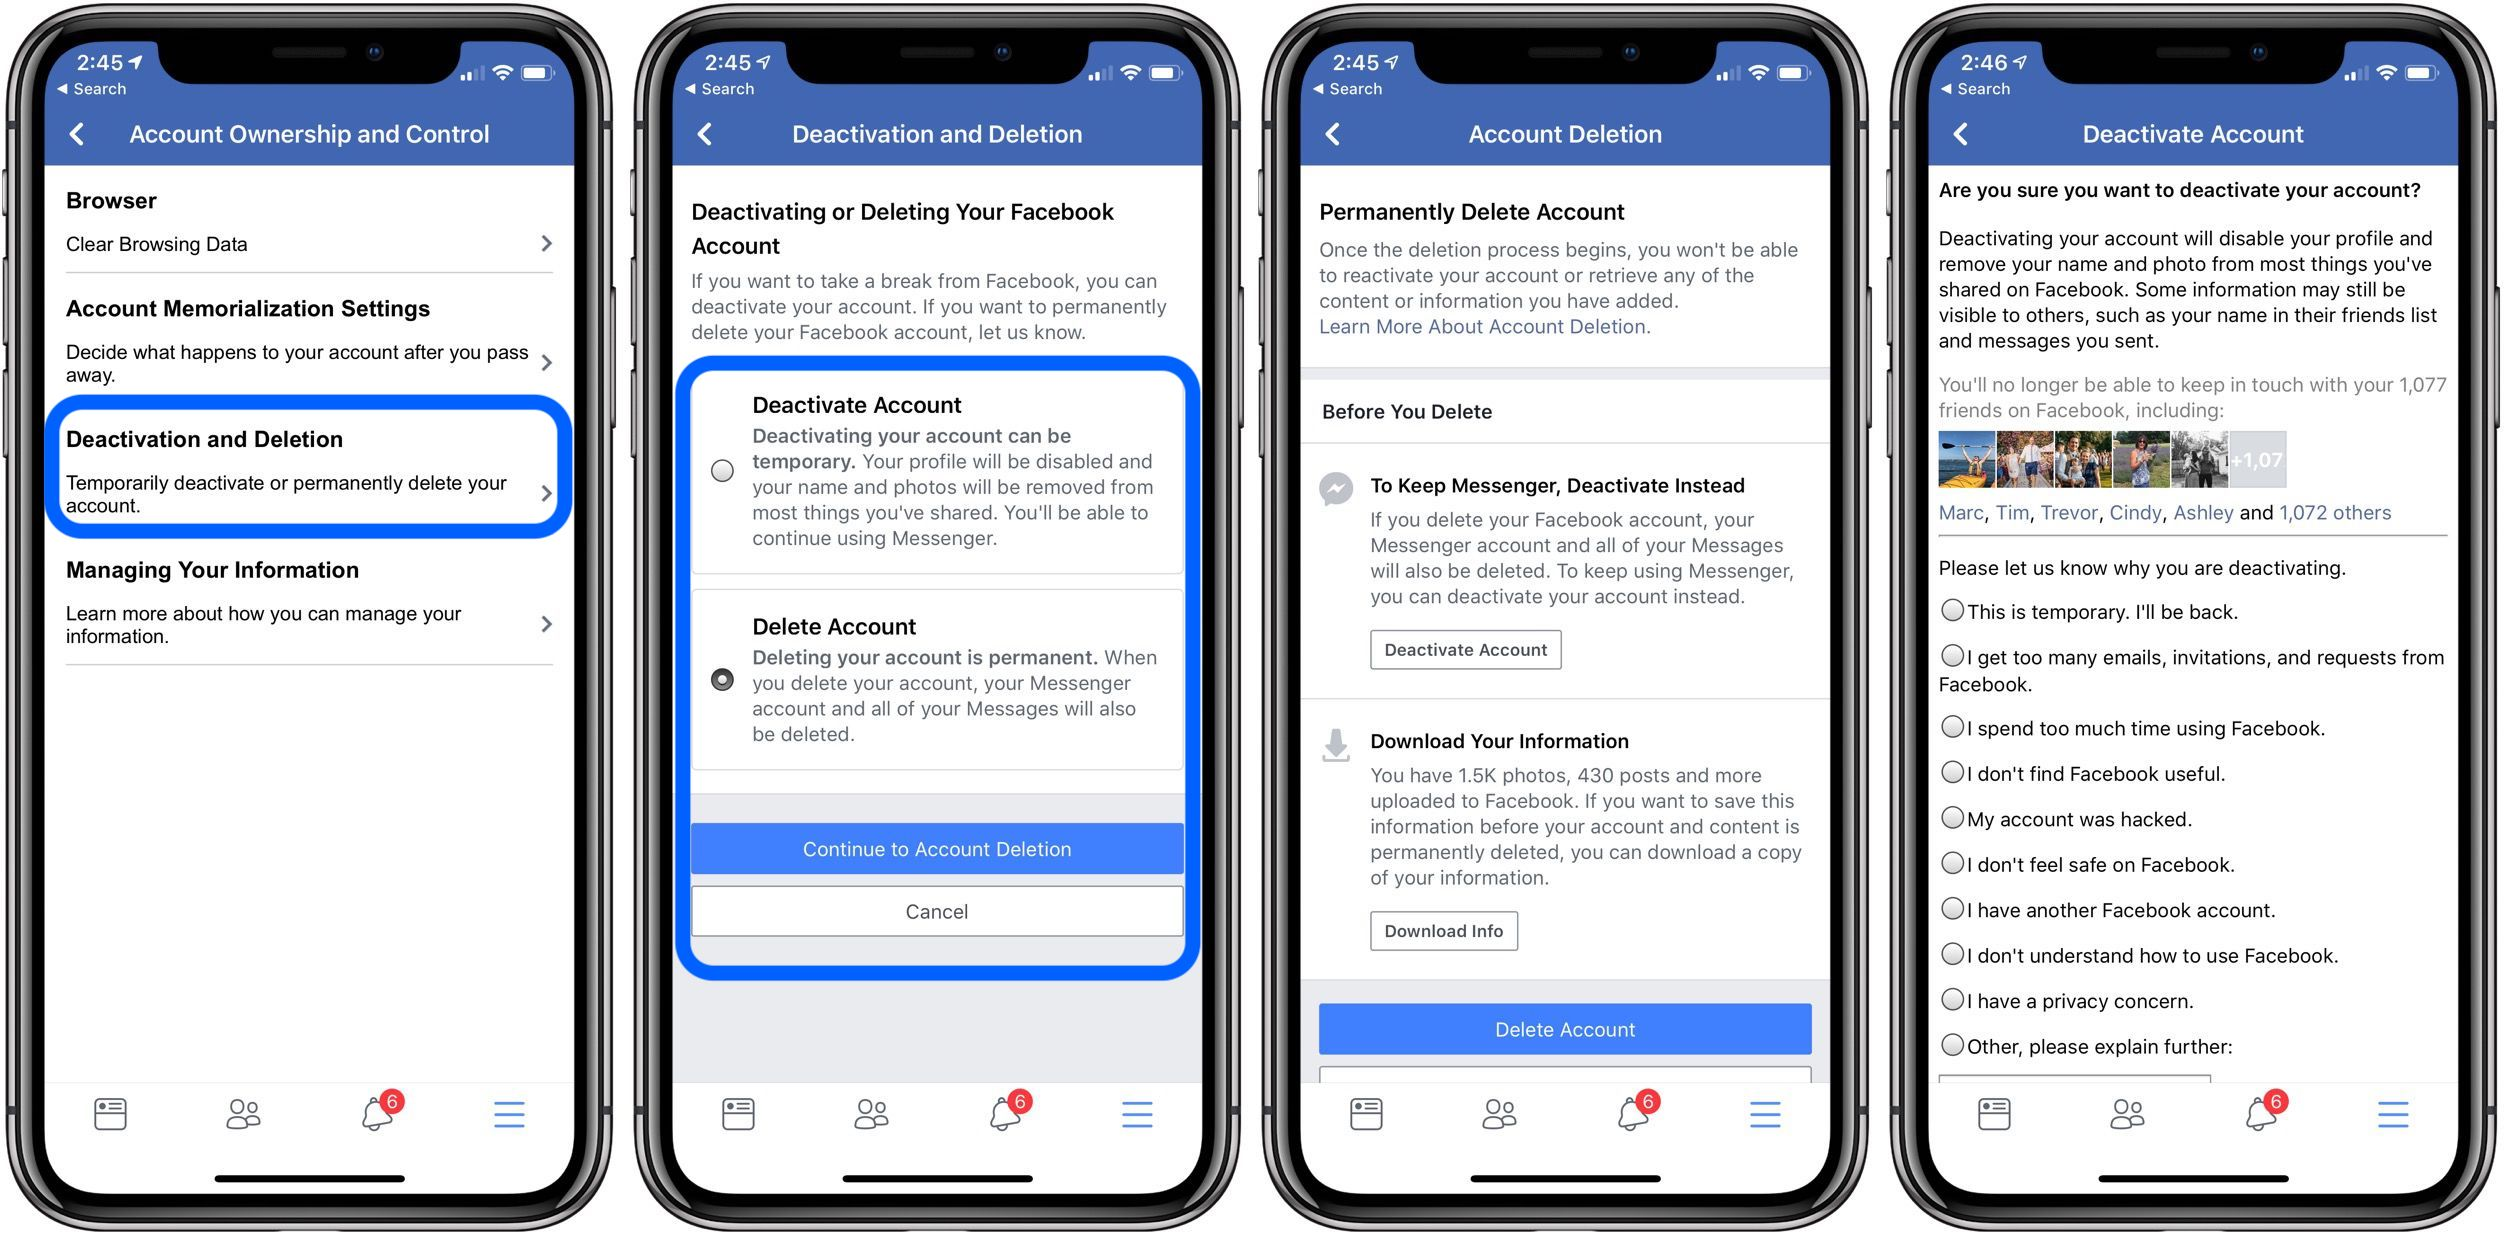 How to deactivate or delete your Facebook account - 9to5Mac